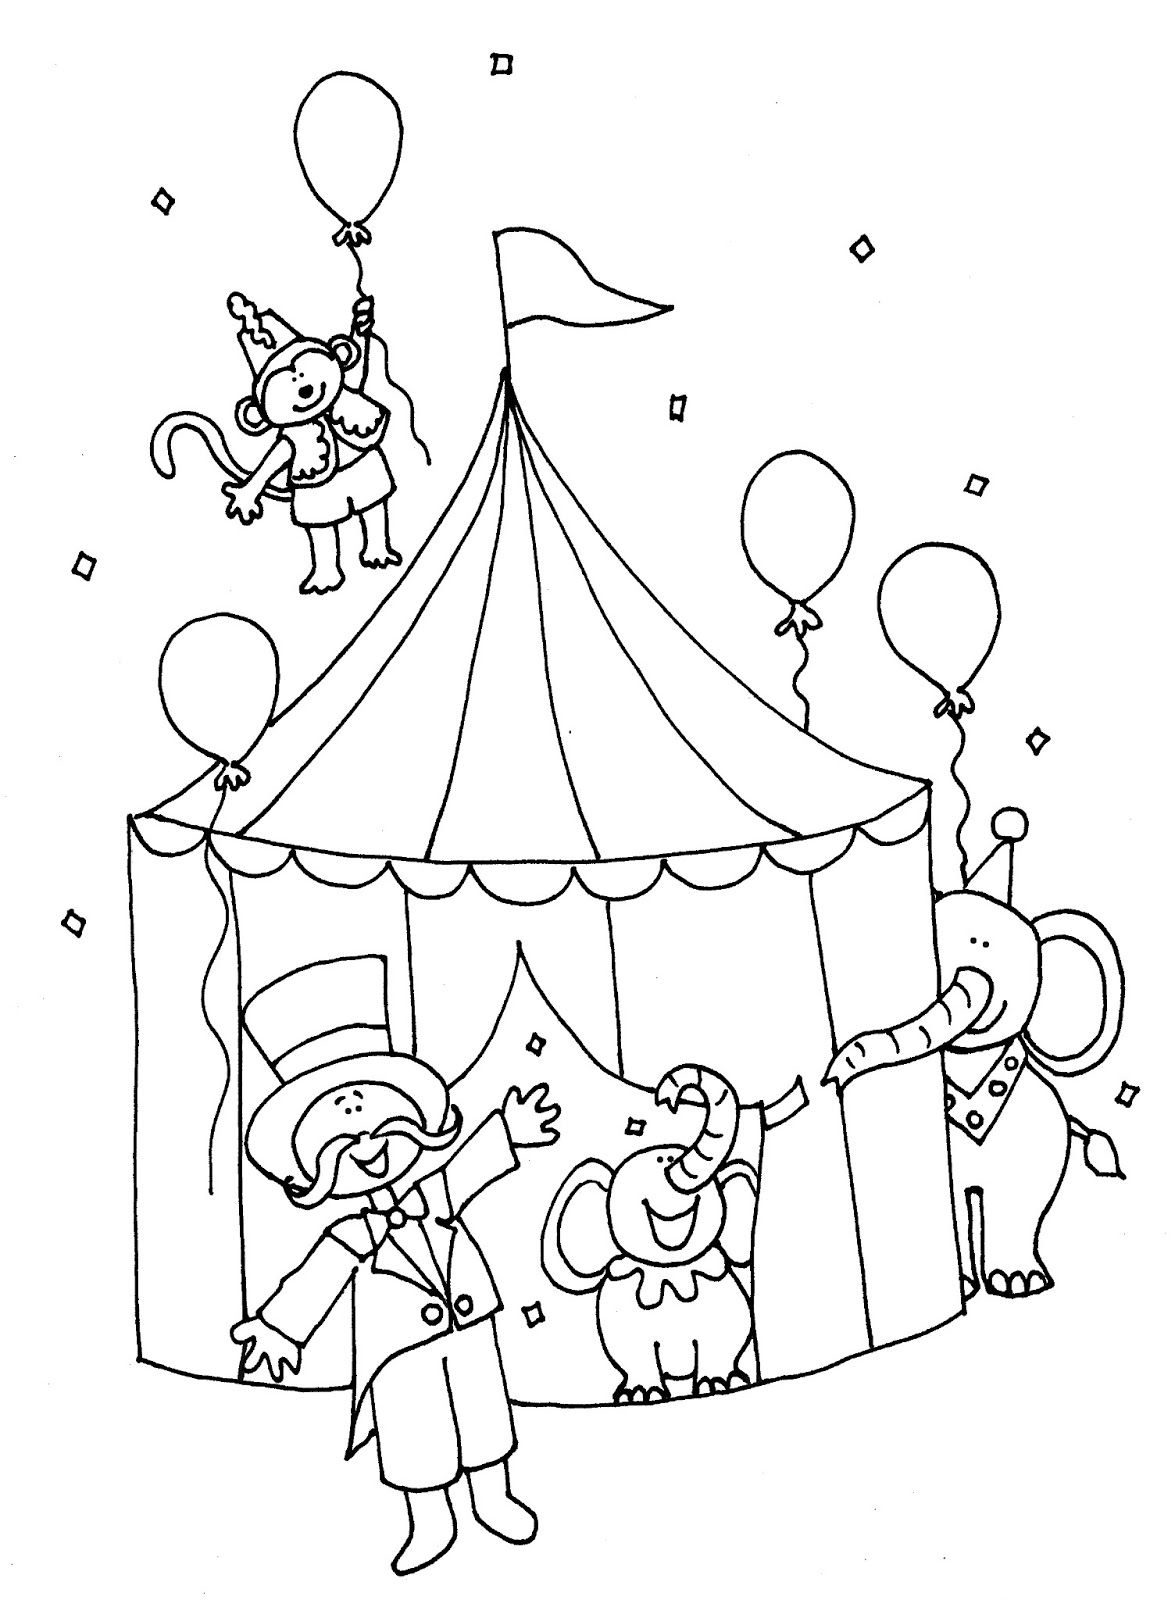 1175x1600 Tent Coloring Page, Printable Tent Coloring Page, Free Tent